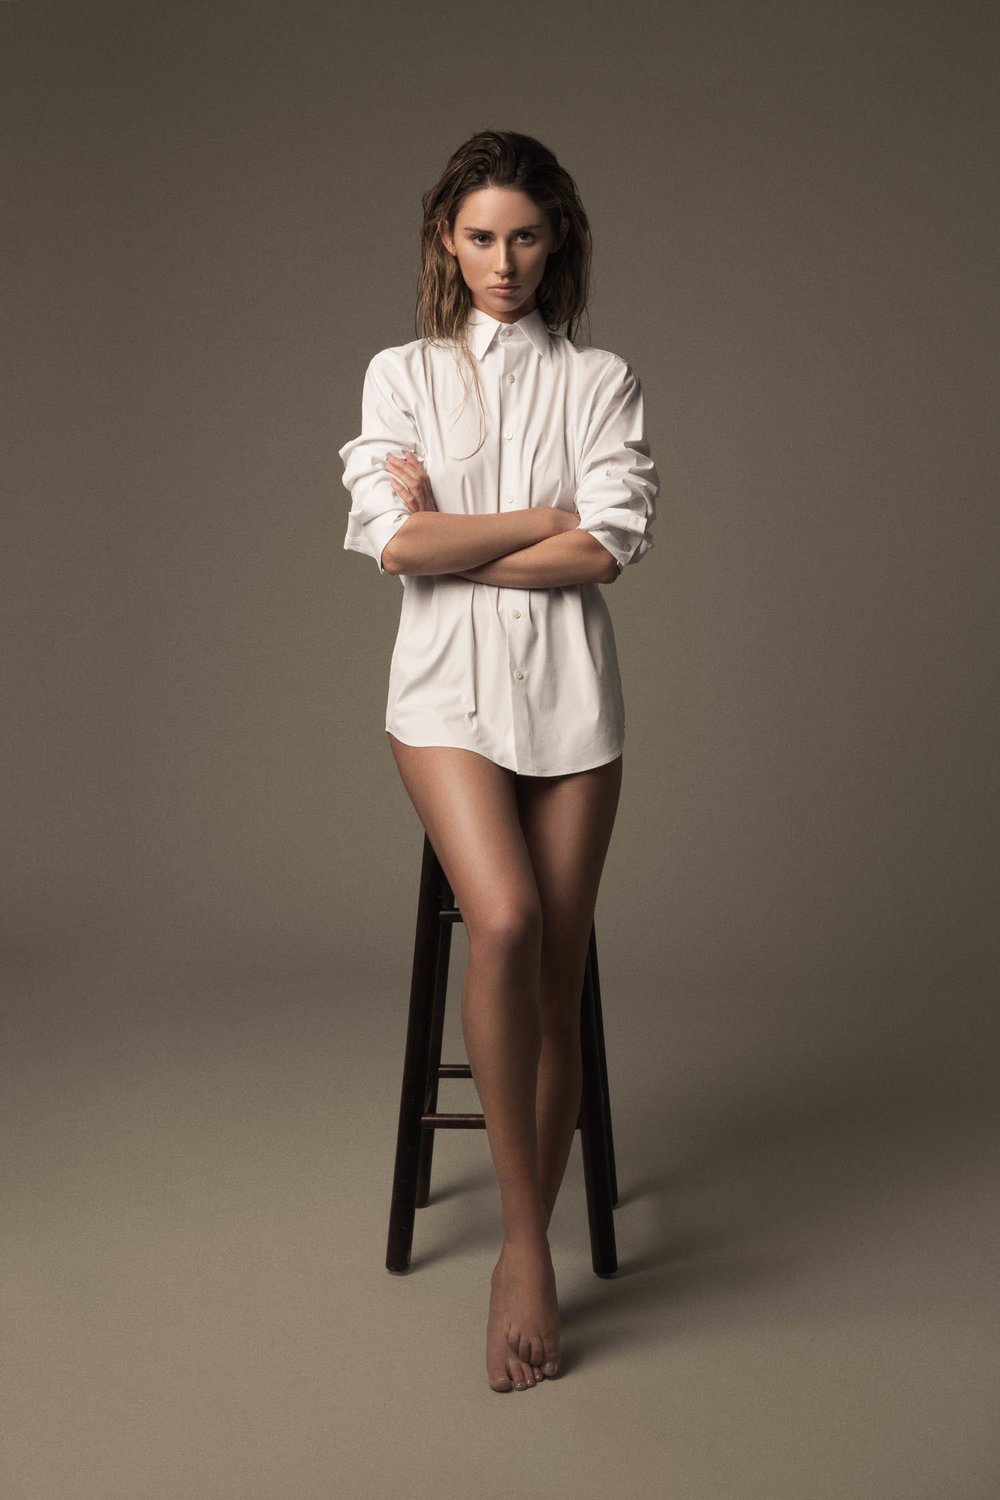 Model wearing a white dress shirt and sitting on a wood stool.